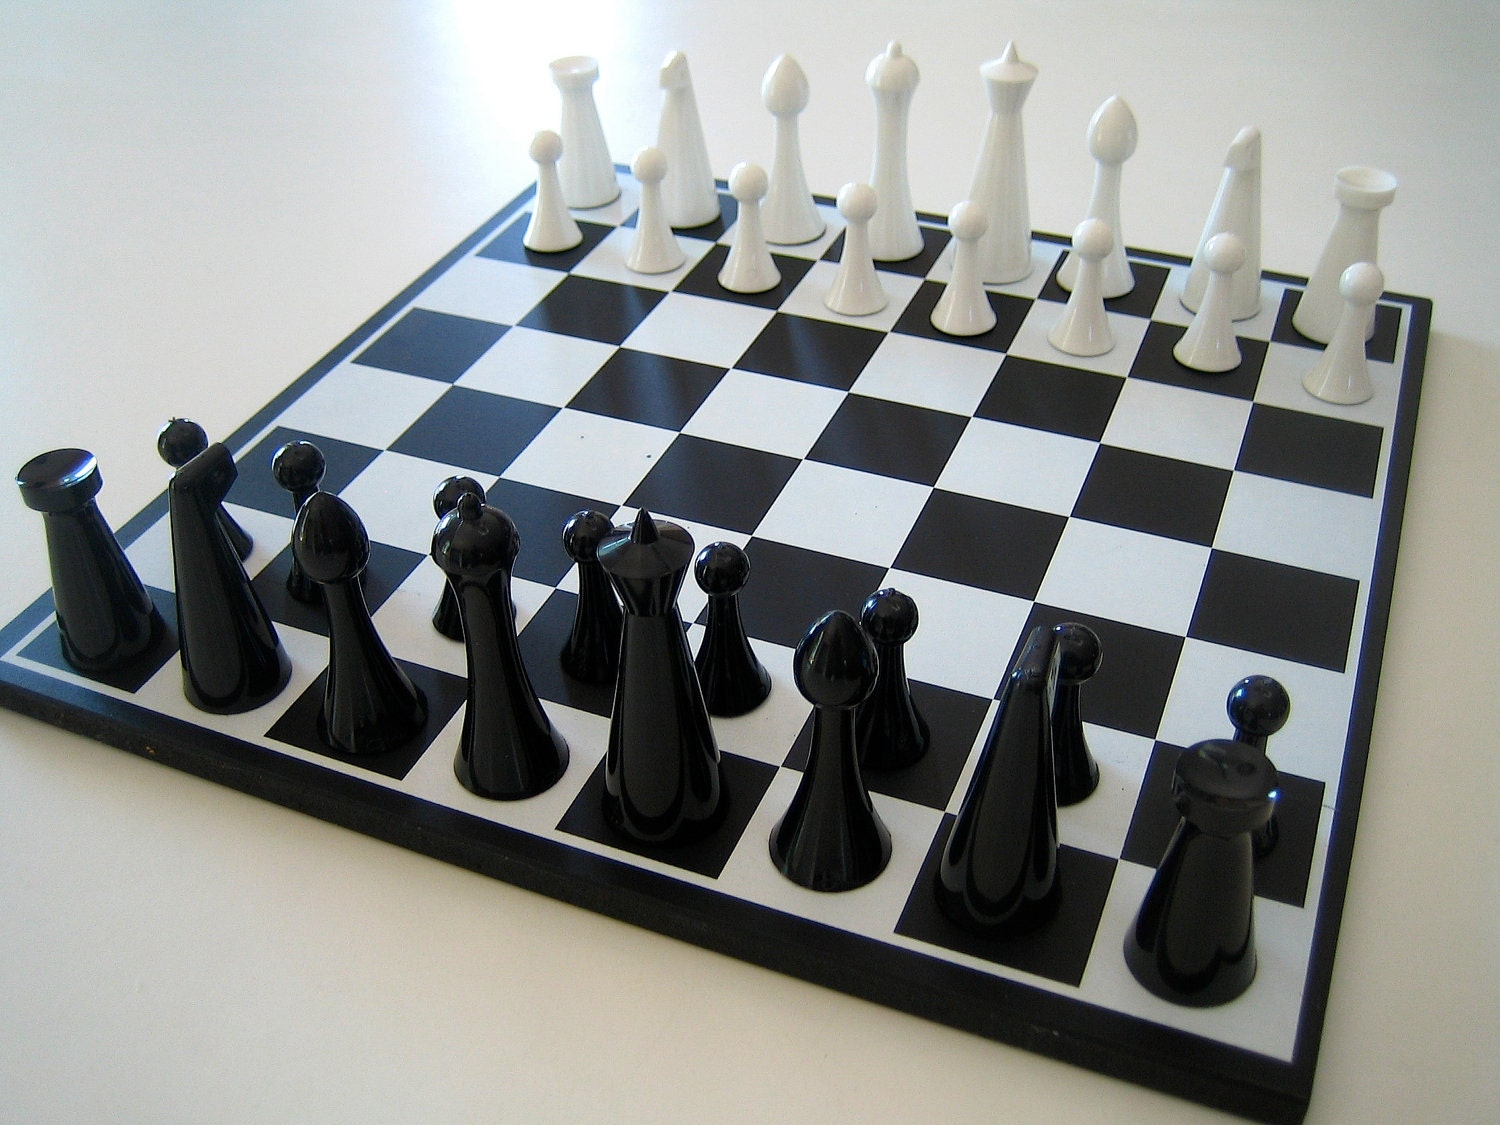 1960 herman ohme modern chess set by linea72 on etsy